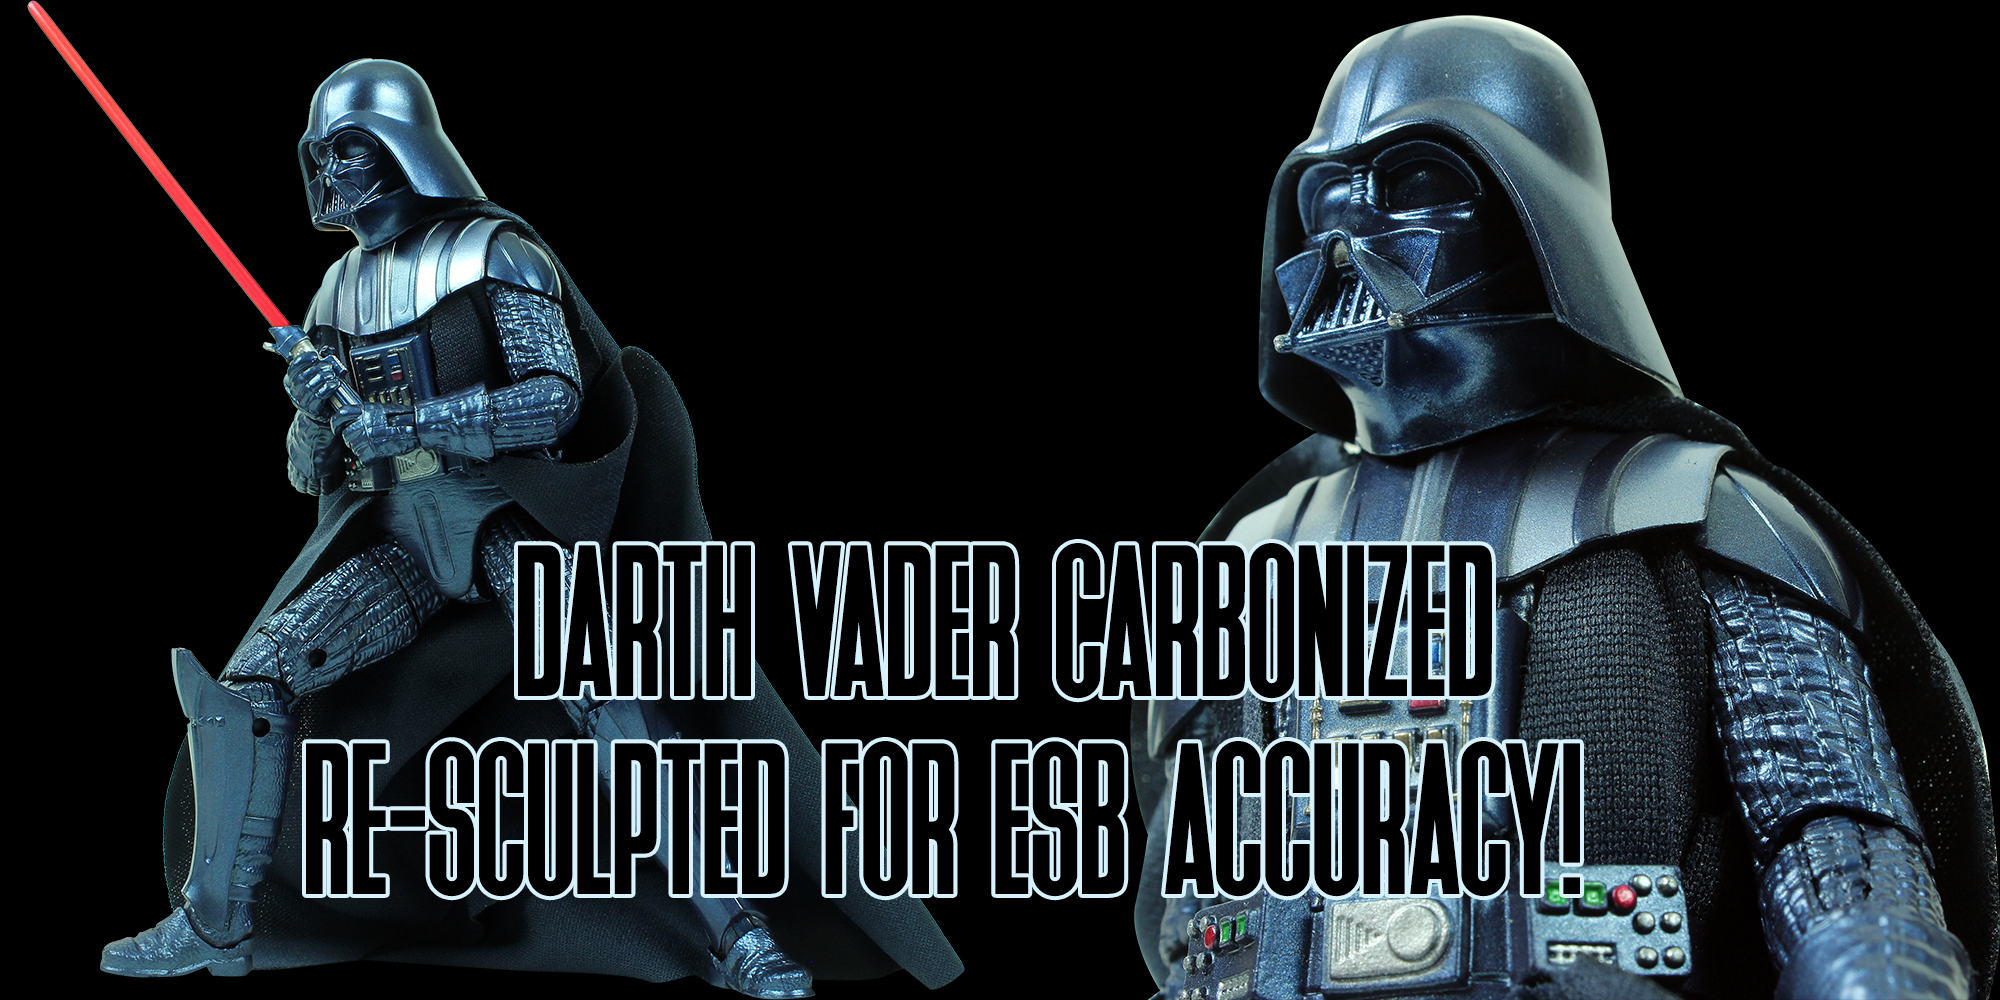 Black Series Darth Vader Carbonized